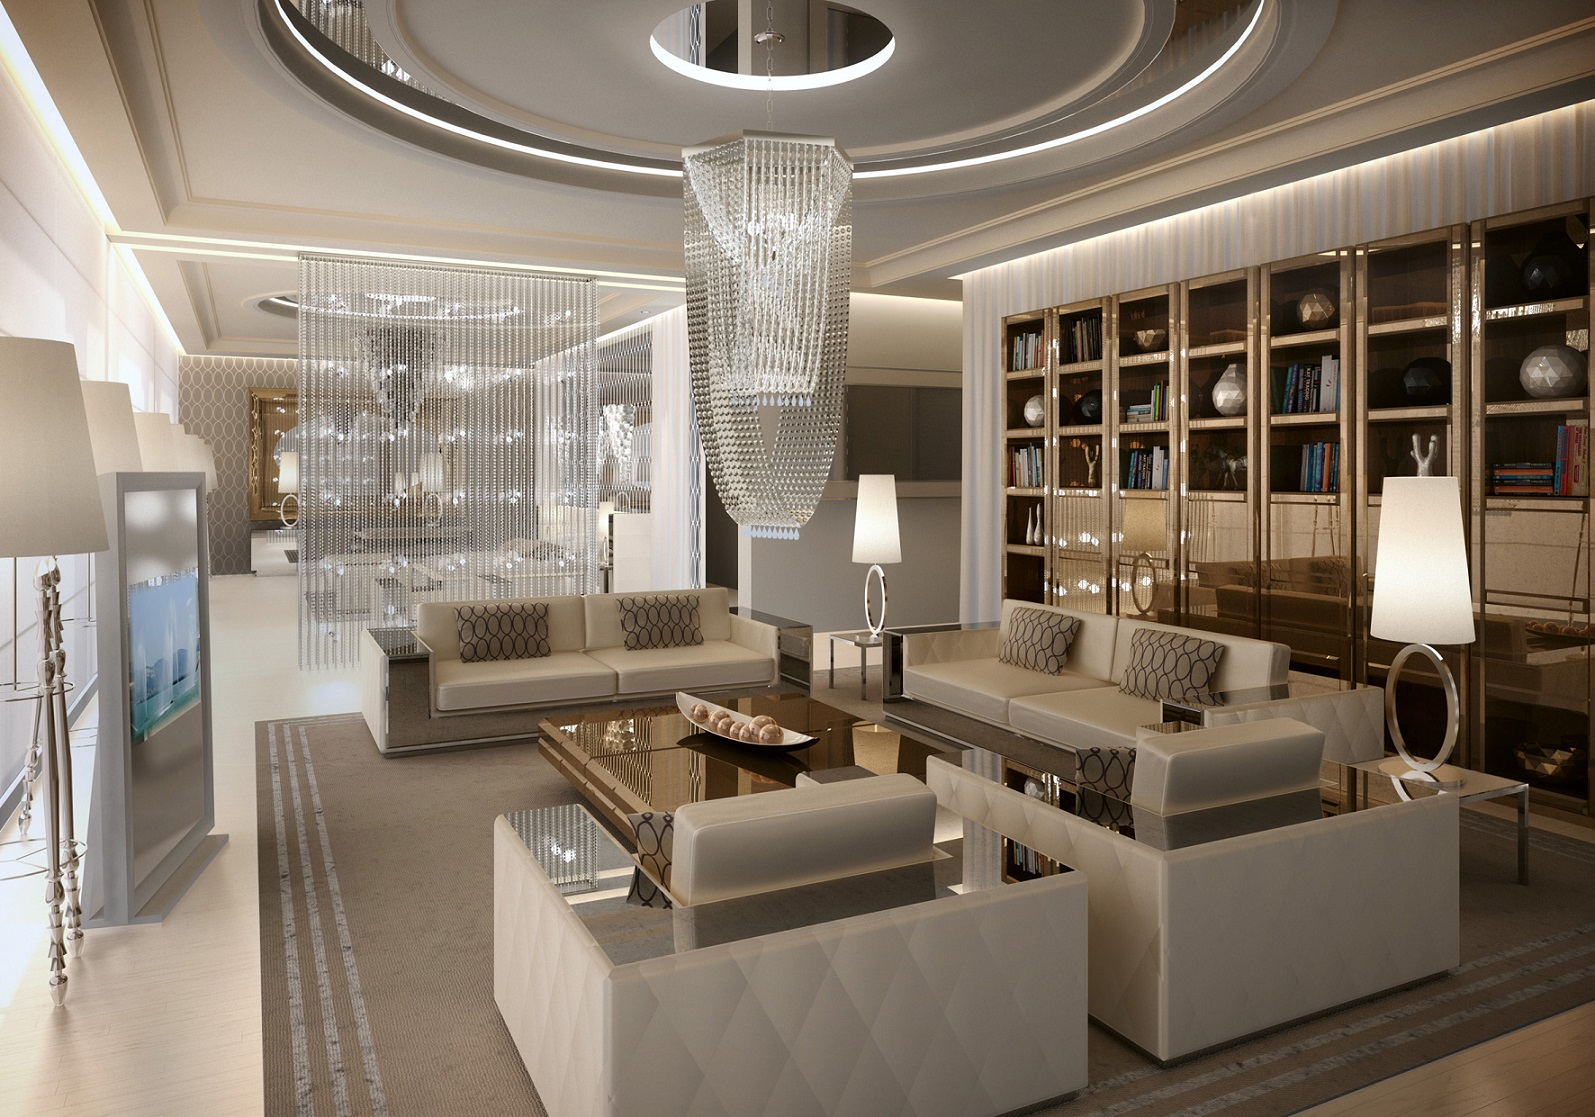 Luxurious Interior Design 18 Luxury Interior Designs That Will Leave You Speechless